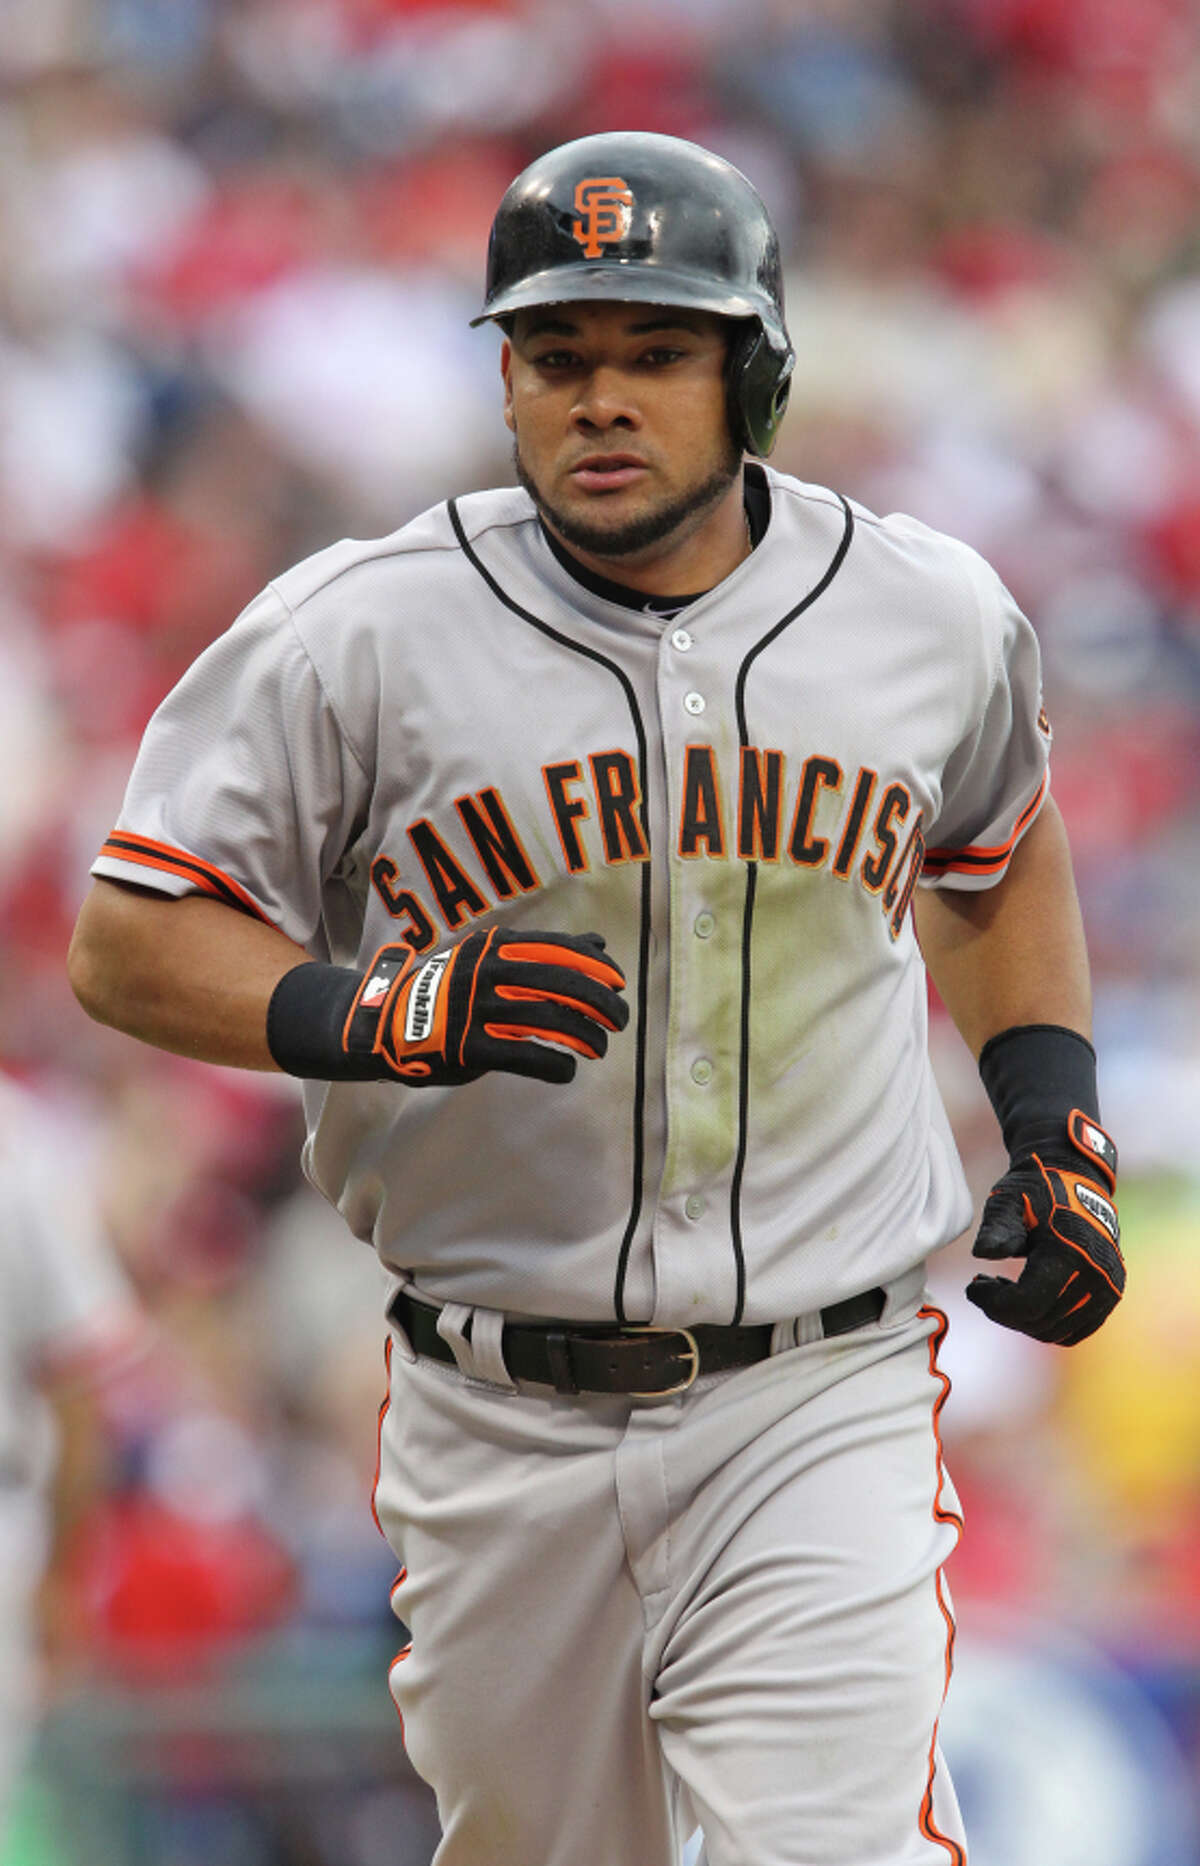 Outfielder Melky Cabrera, who played for the Giants in 2012, received a 50-game suspenion that year for a violation of Major League Baseball's drug policy.